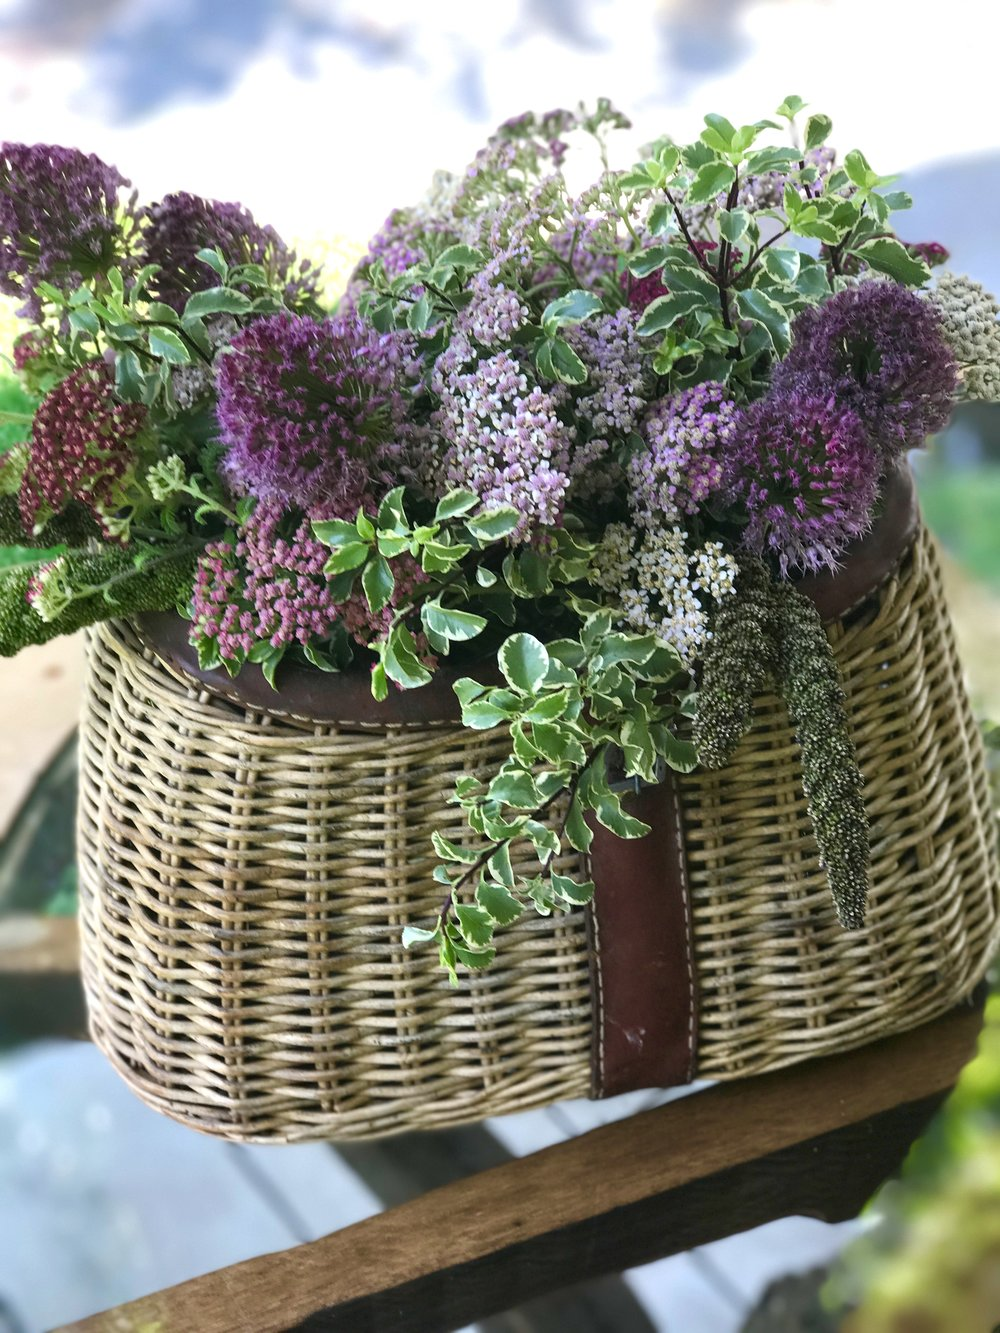 Fishing Basket with Flowers